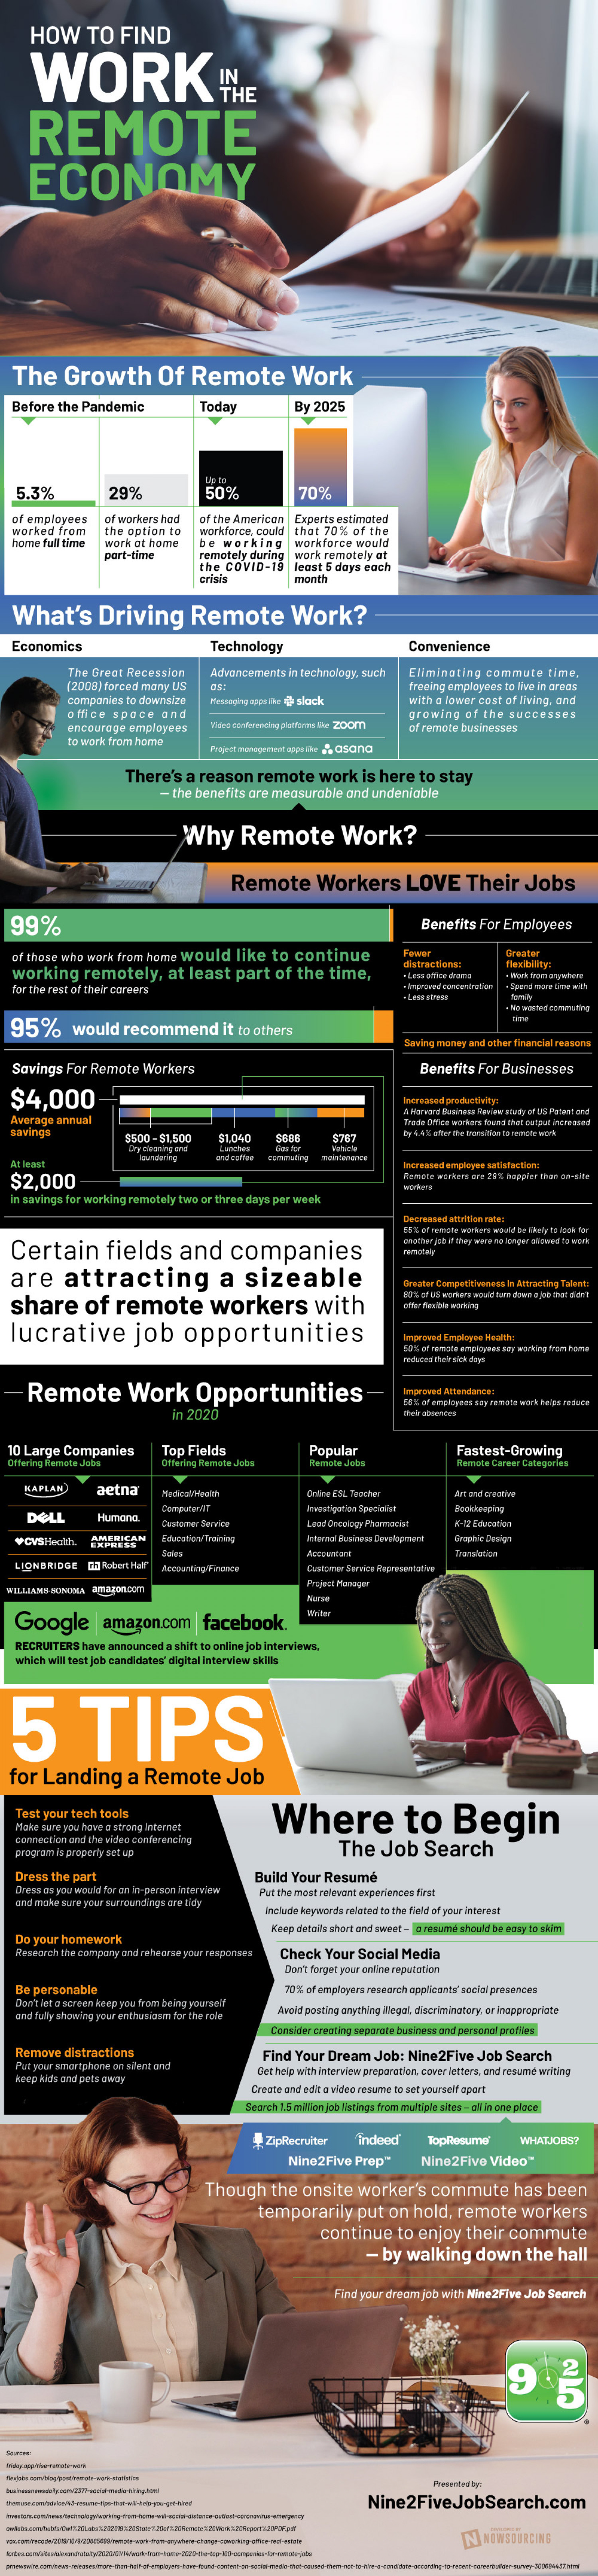 Finding Remote Work in the COVID Economy Infographic